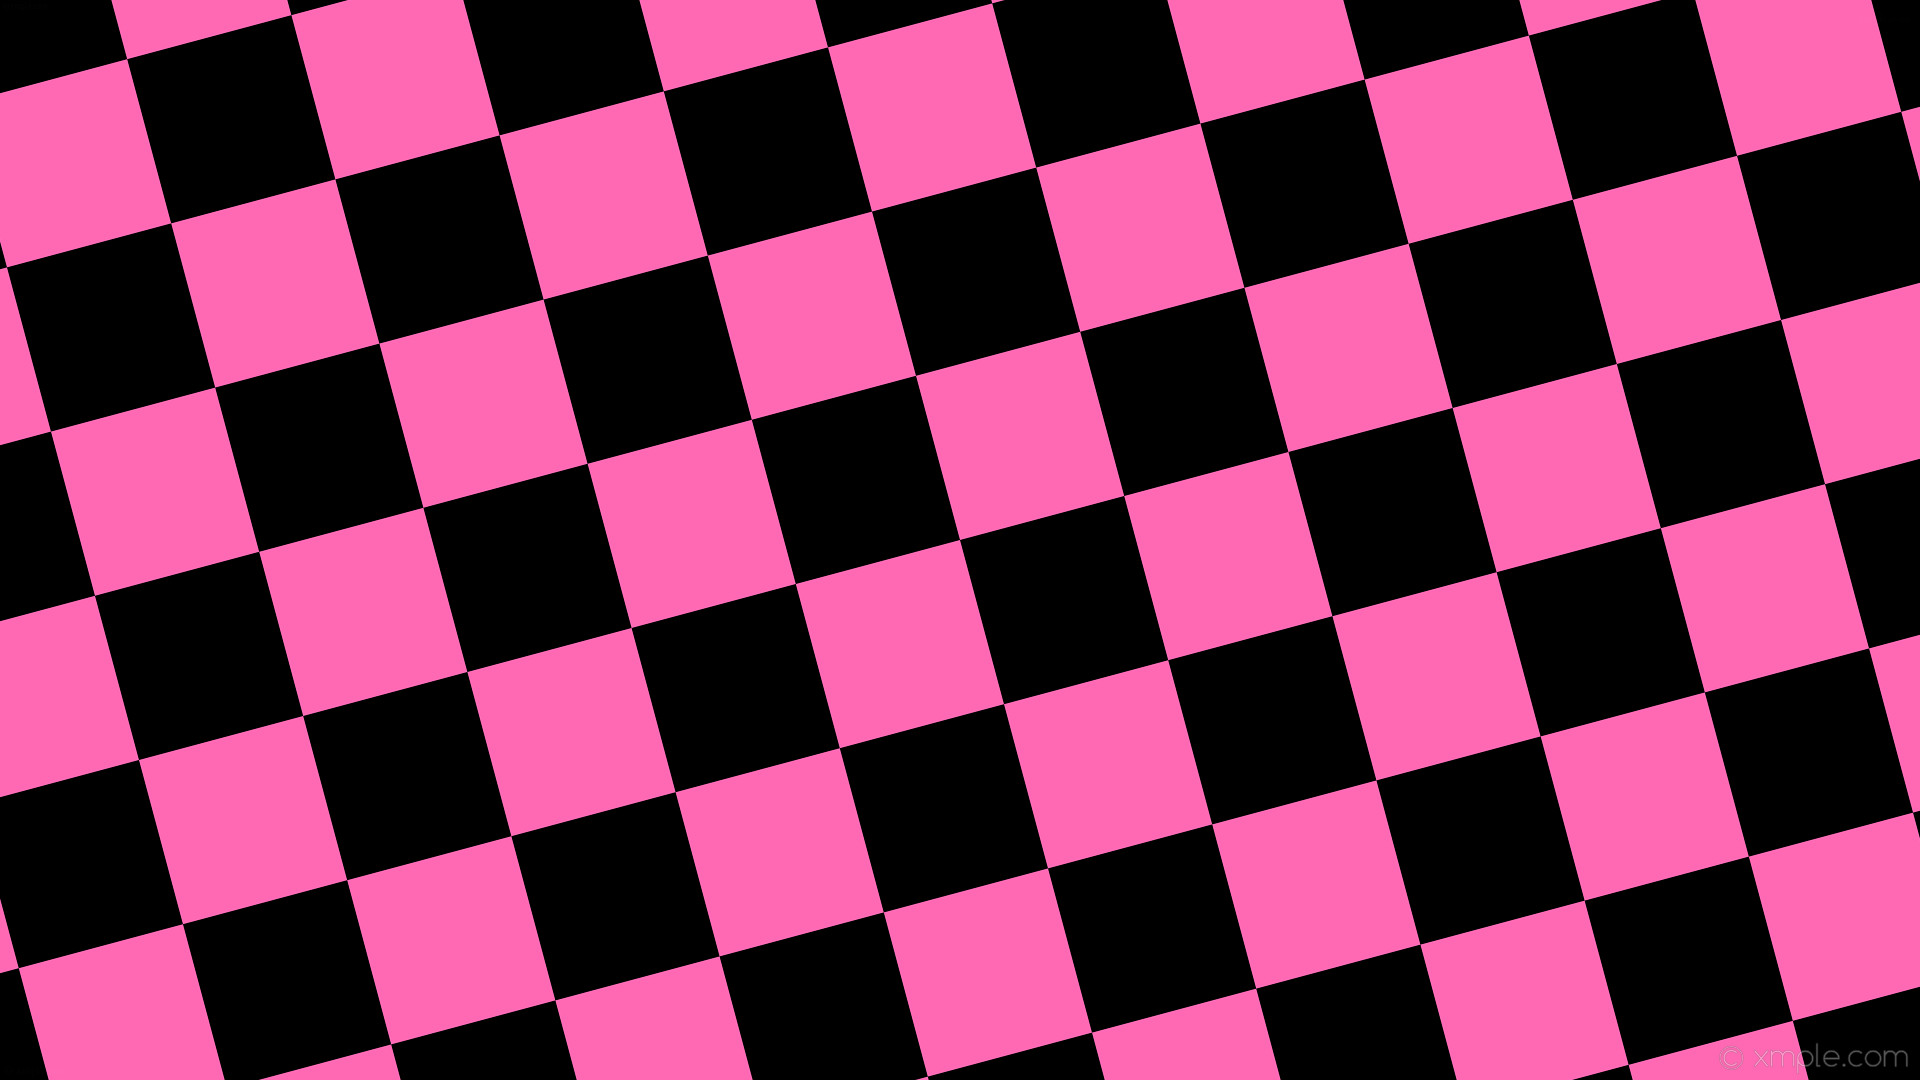 High Quality Pink Aesthetic Wallpaper Desktop